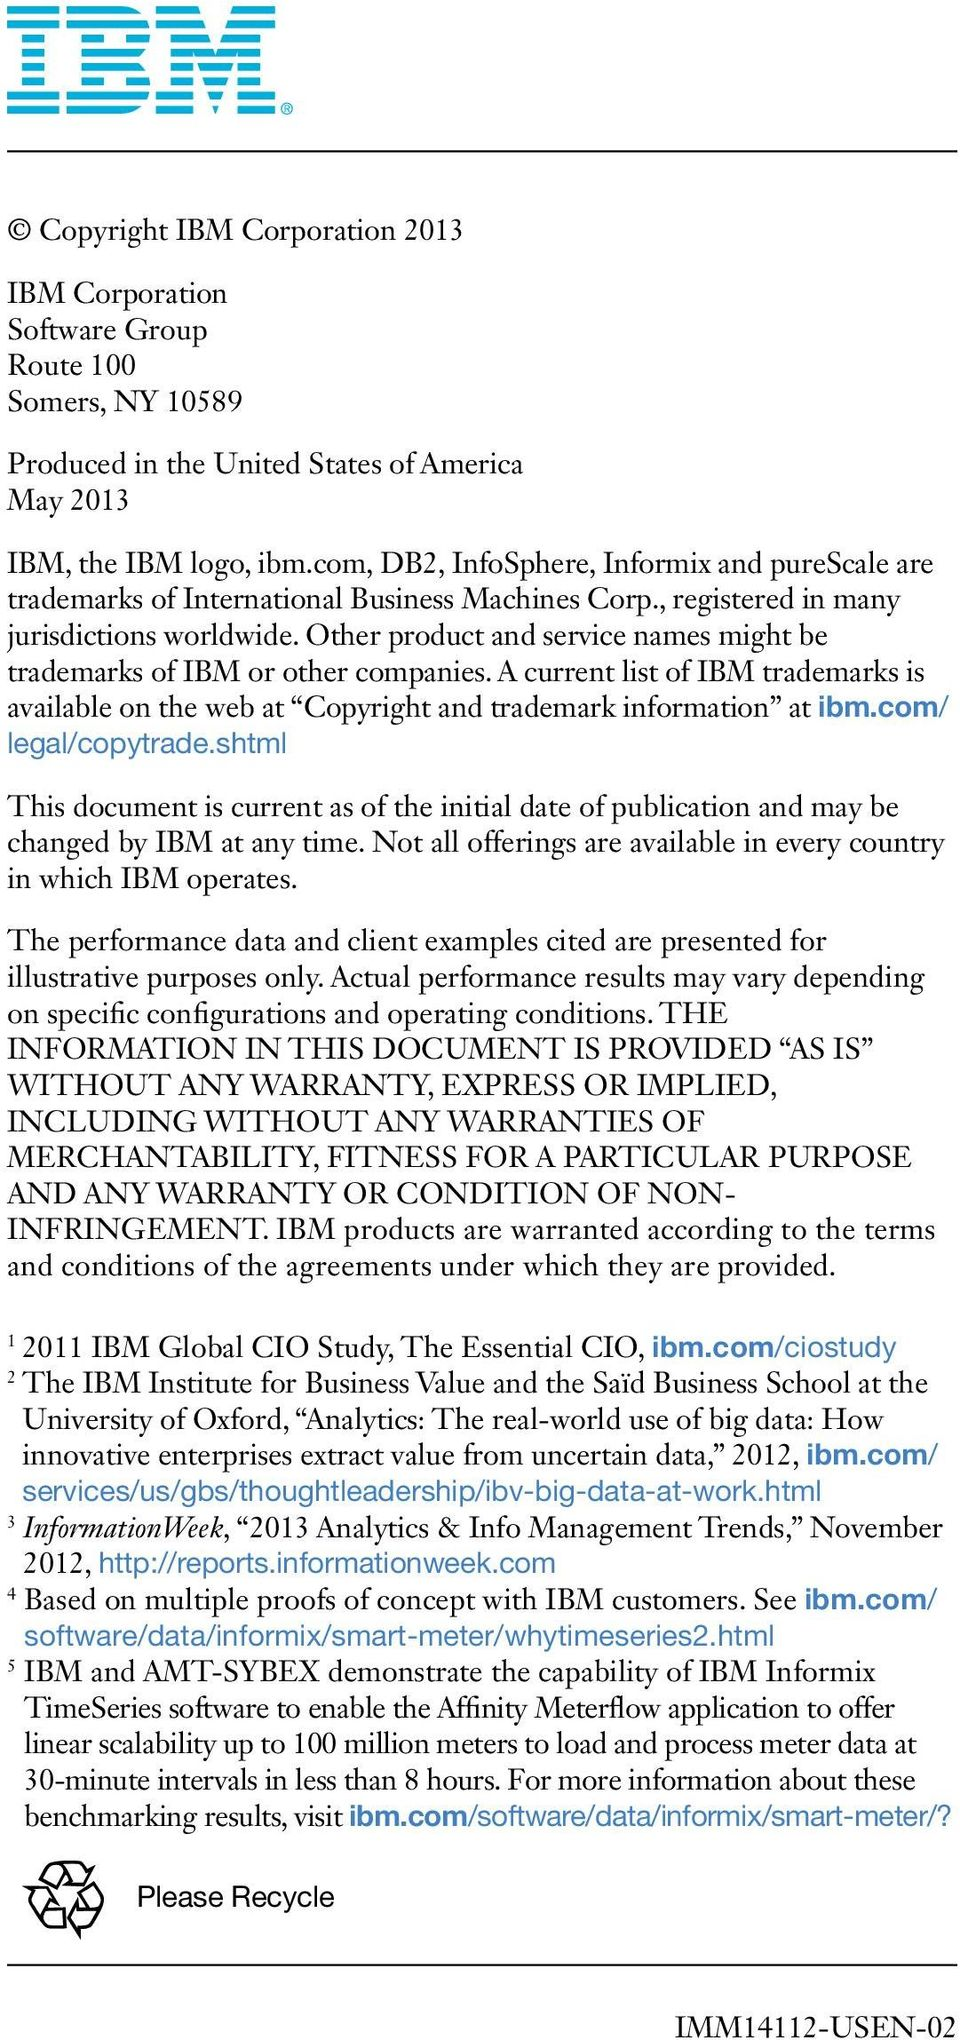 ibm software products list pdf